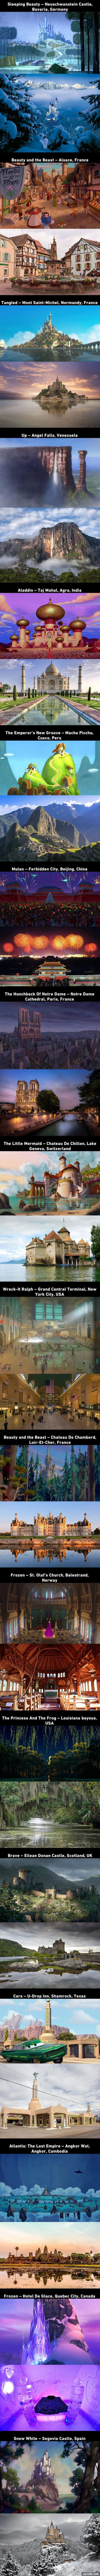 I've been to the Chateau de Chillon- why did no one tell me the Little Mermaid castle was inspired by it?!